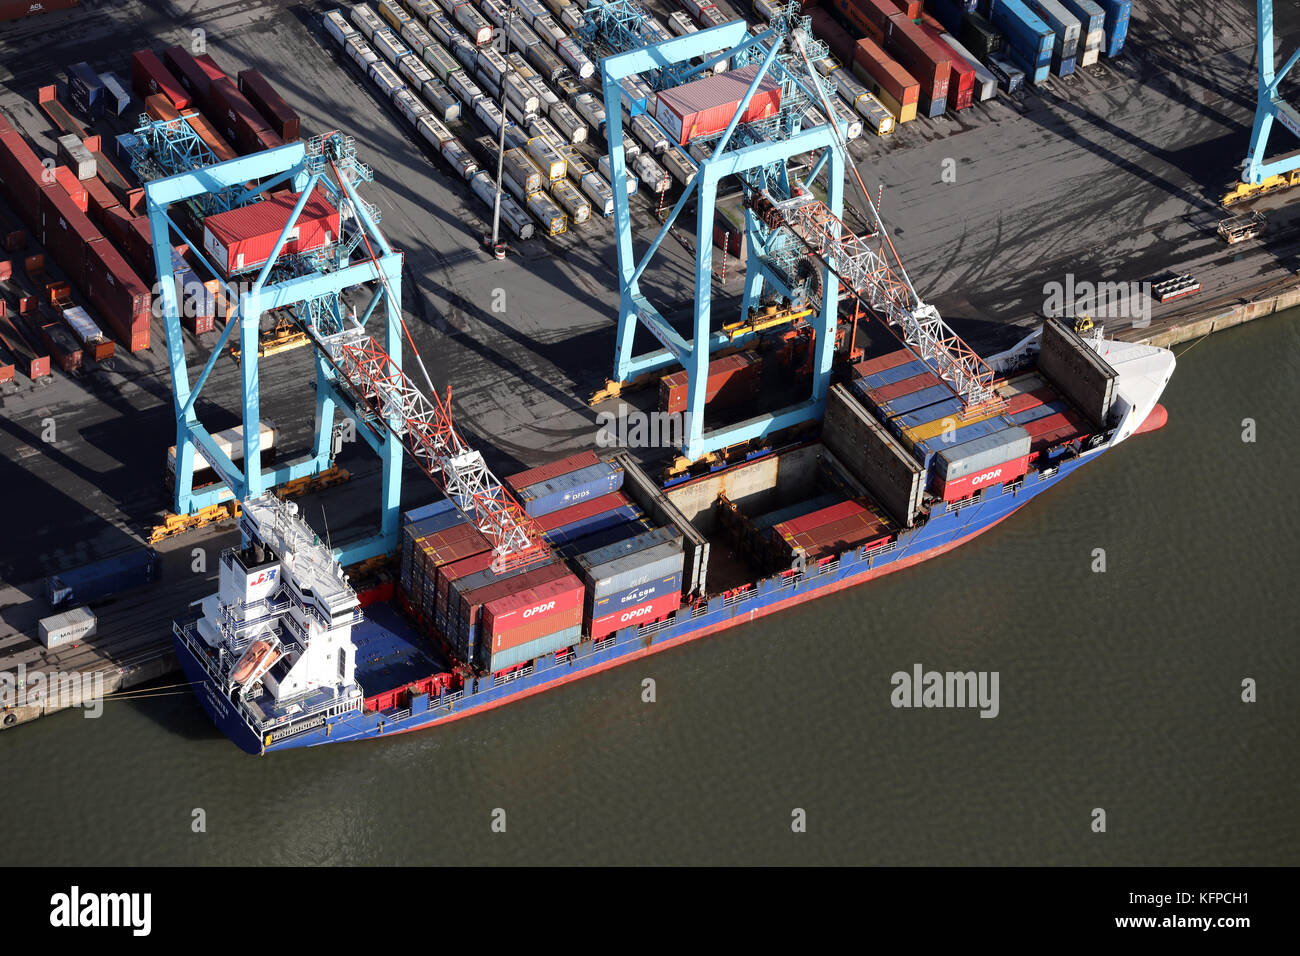 aerial view of Encounter at Seaforth Docks, a container terminal, on the River Mersey, UK - Stock Image